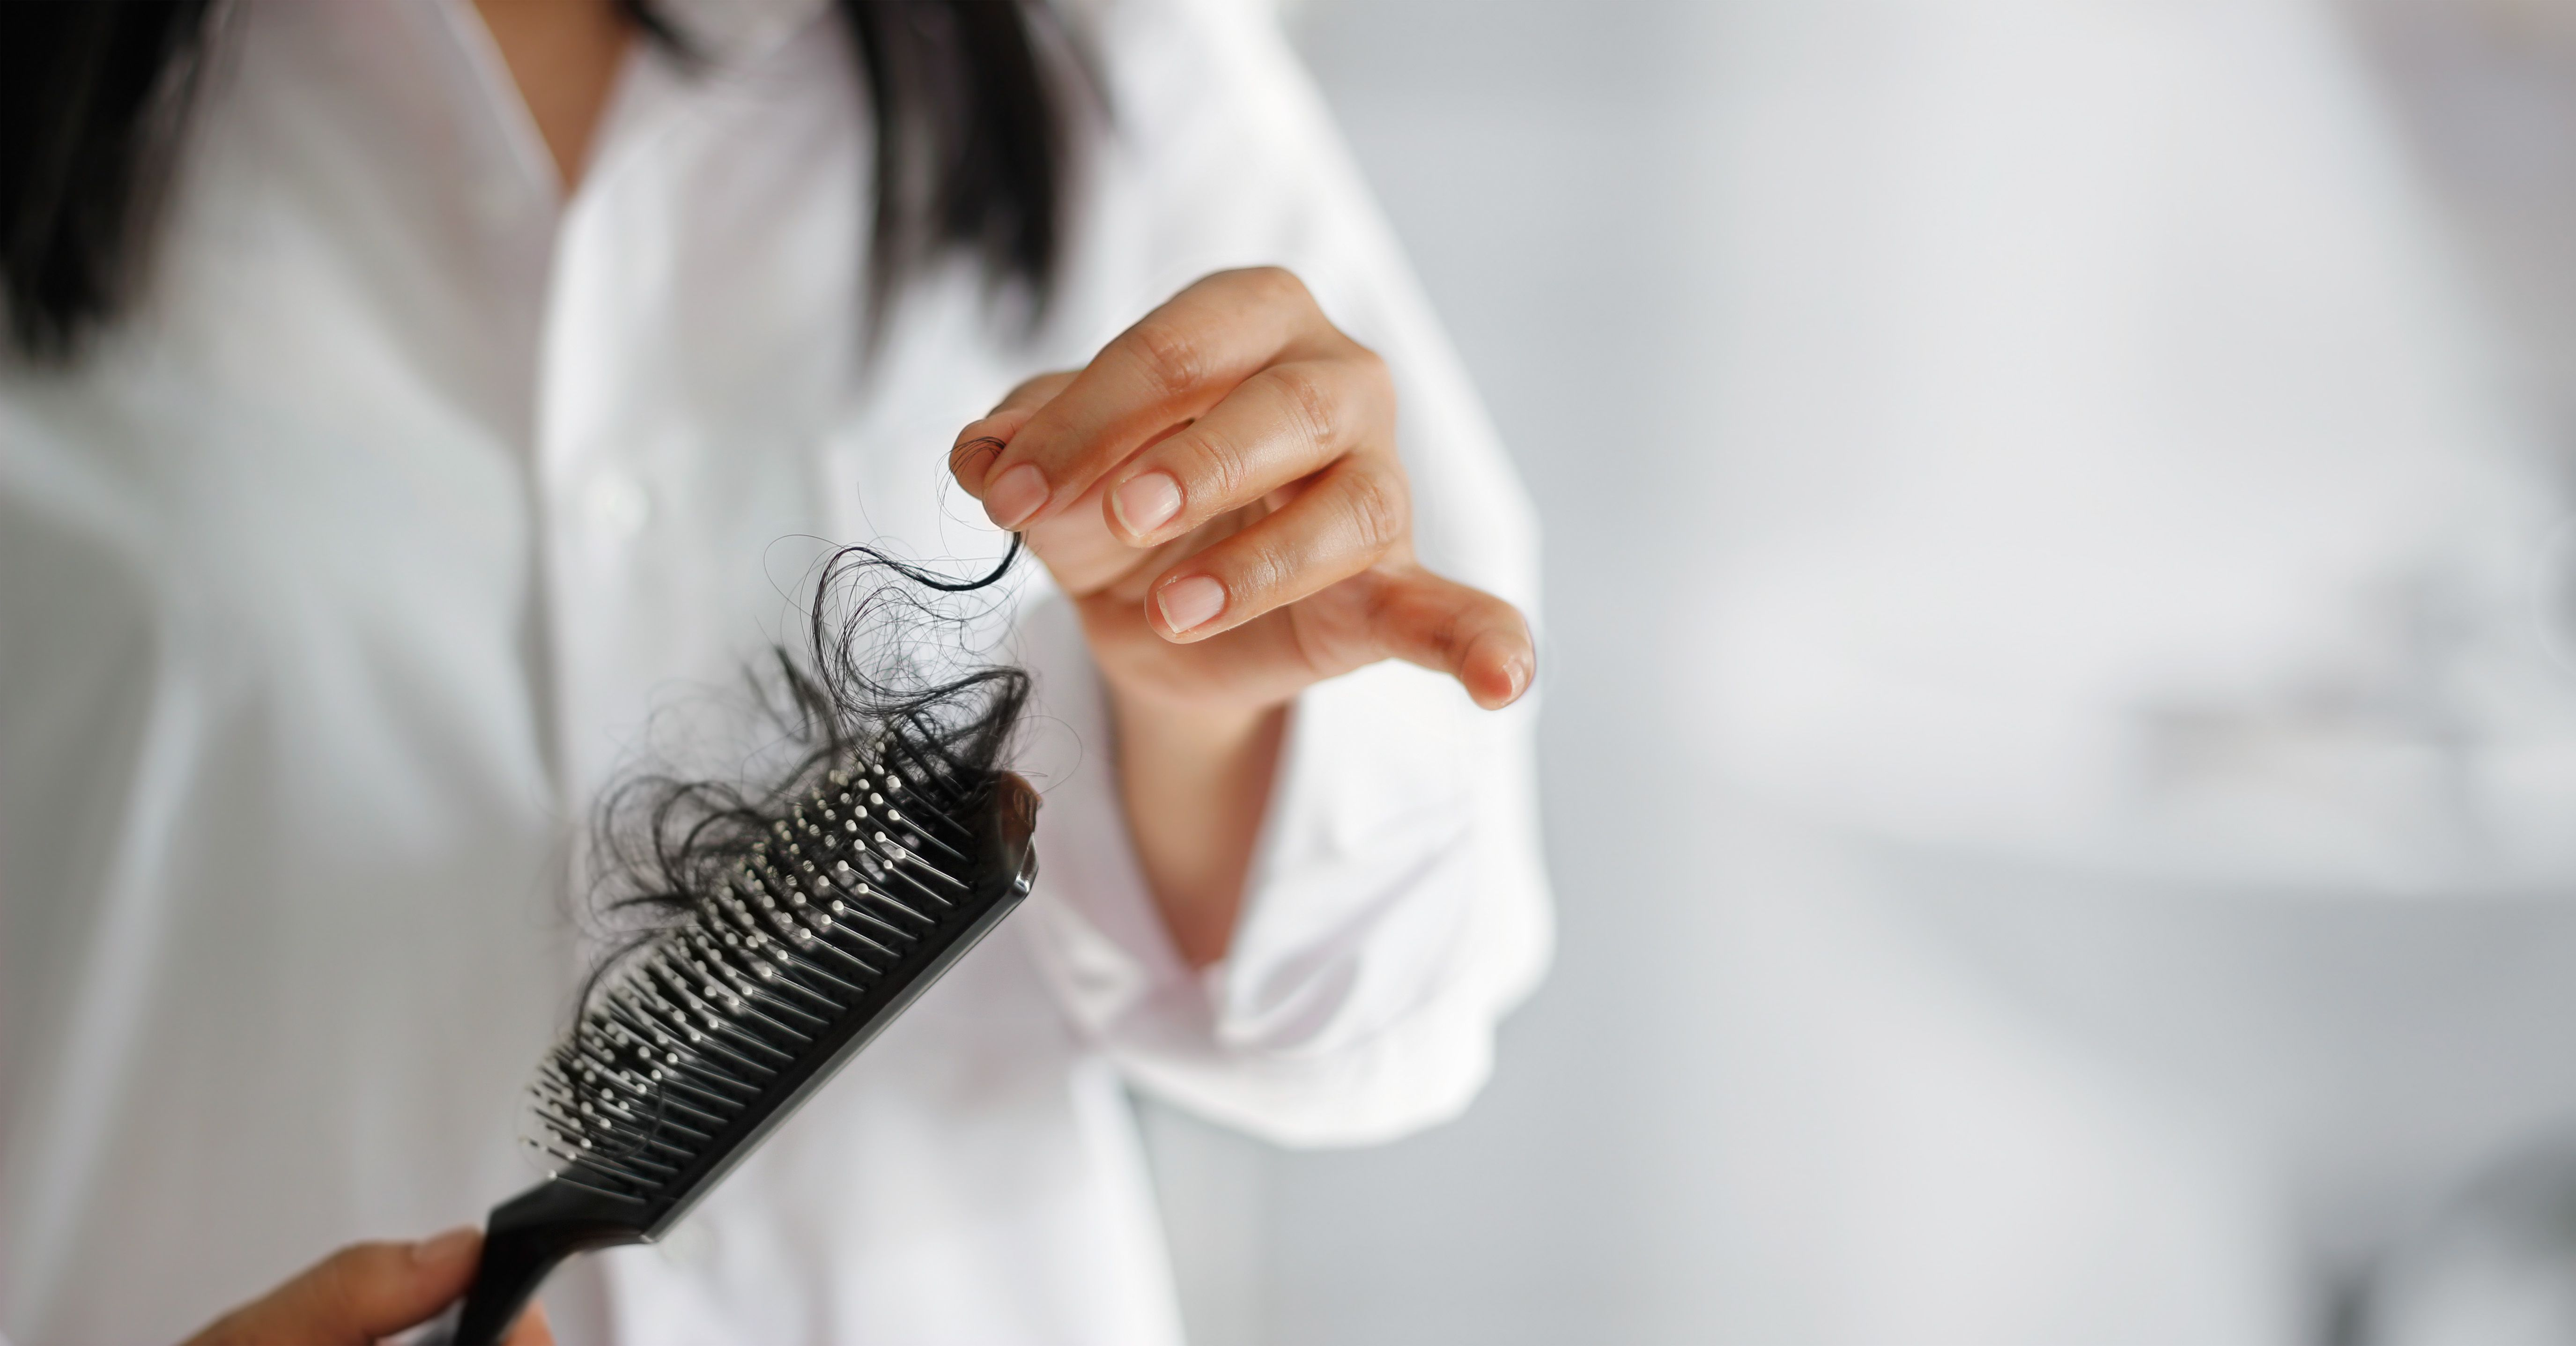 woman losing hair on hairbrush in hand on bathroom background